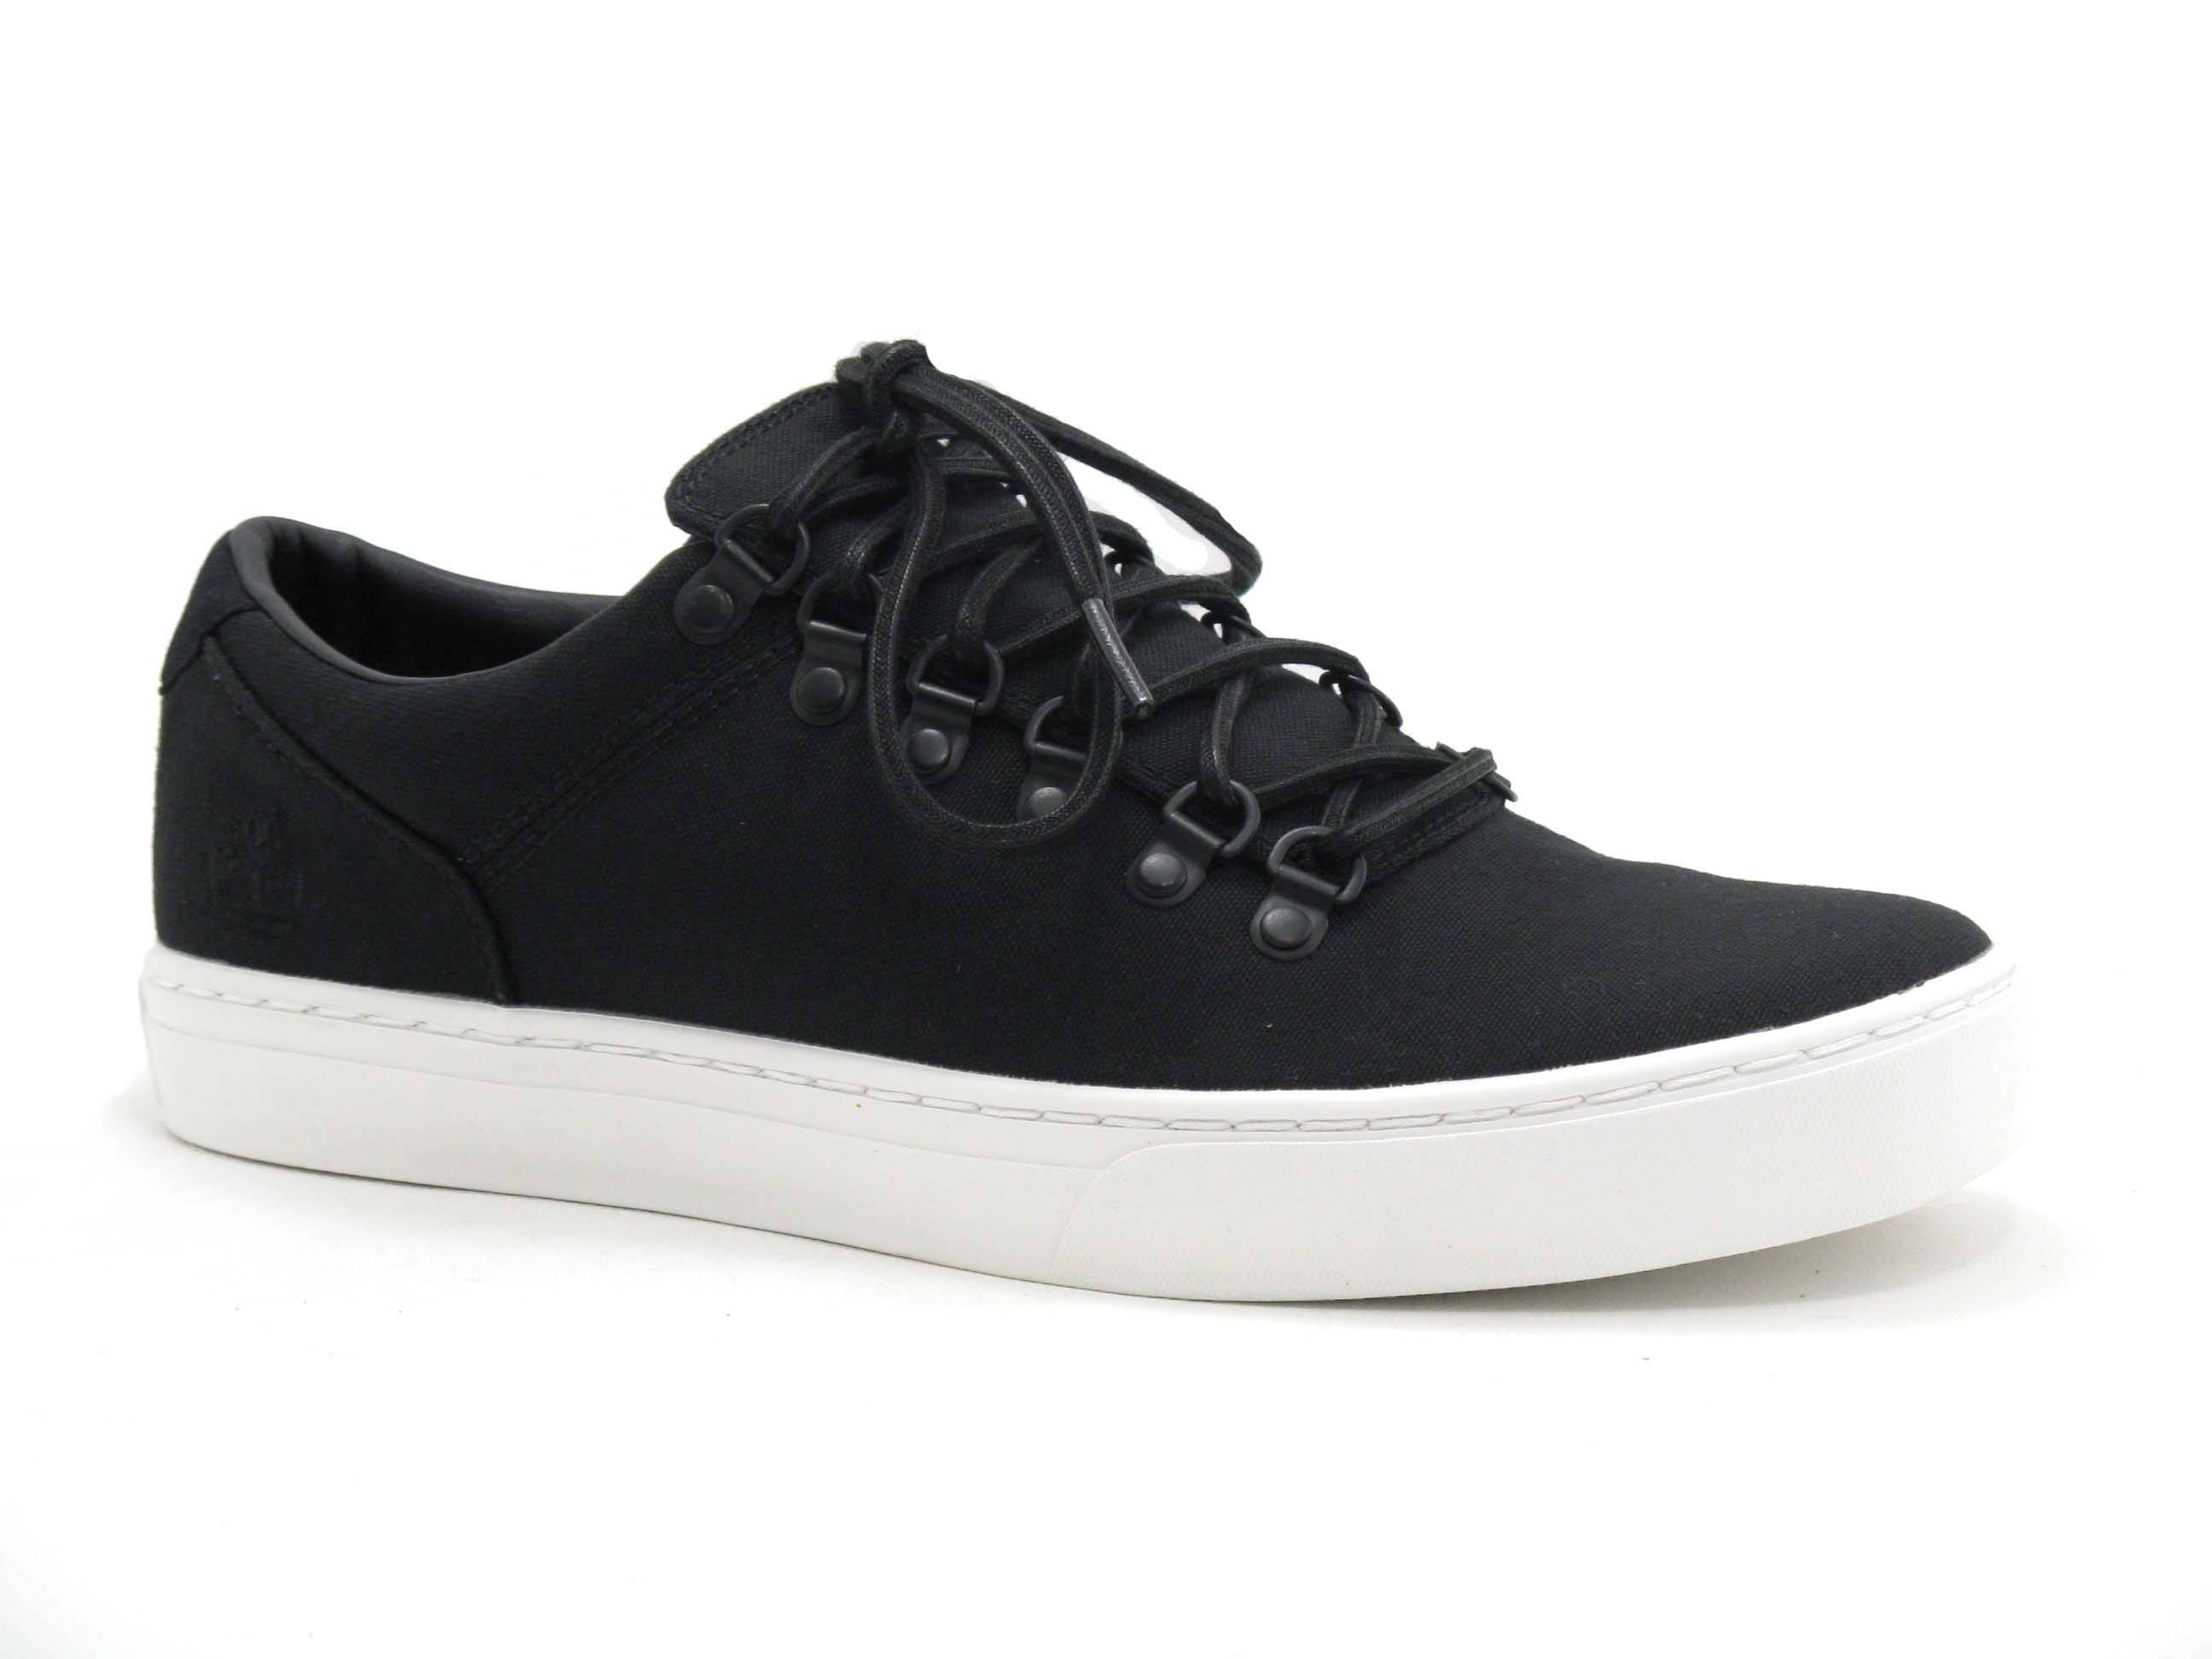 Timberland Chaussure en Toile Homme Timberland - Noir - Point. 40,41,42,43,44,45,46